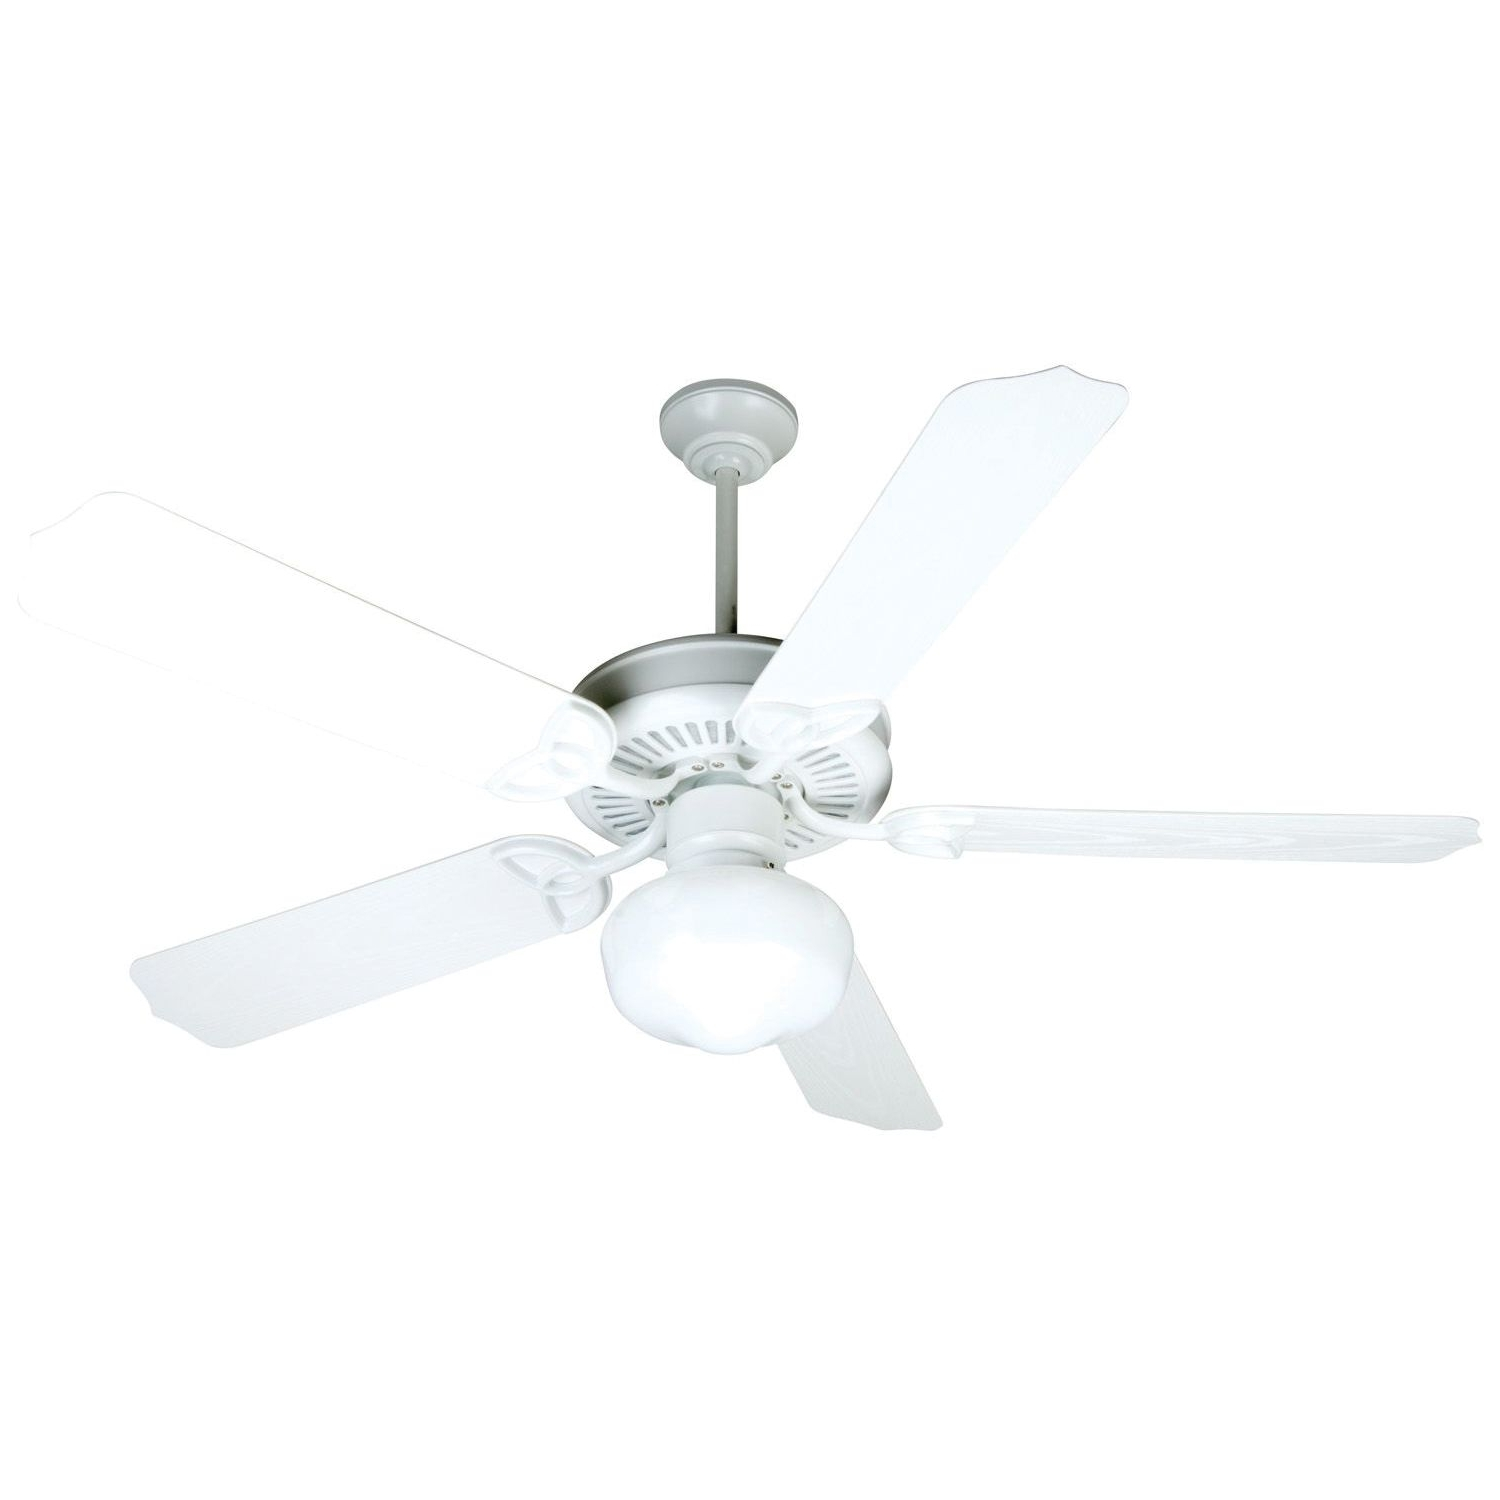 Craftmade Opxl52w Heavy Duty Traditional Ceiling Fan 52 Inch White 5 In Fashionable Heavy Duty Outdoor Ceiling Fans (View 15 of 20)